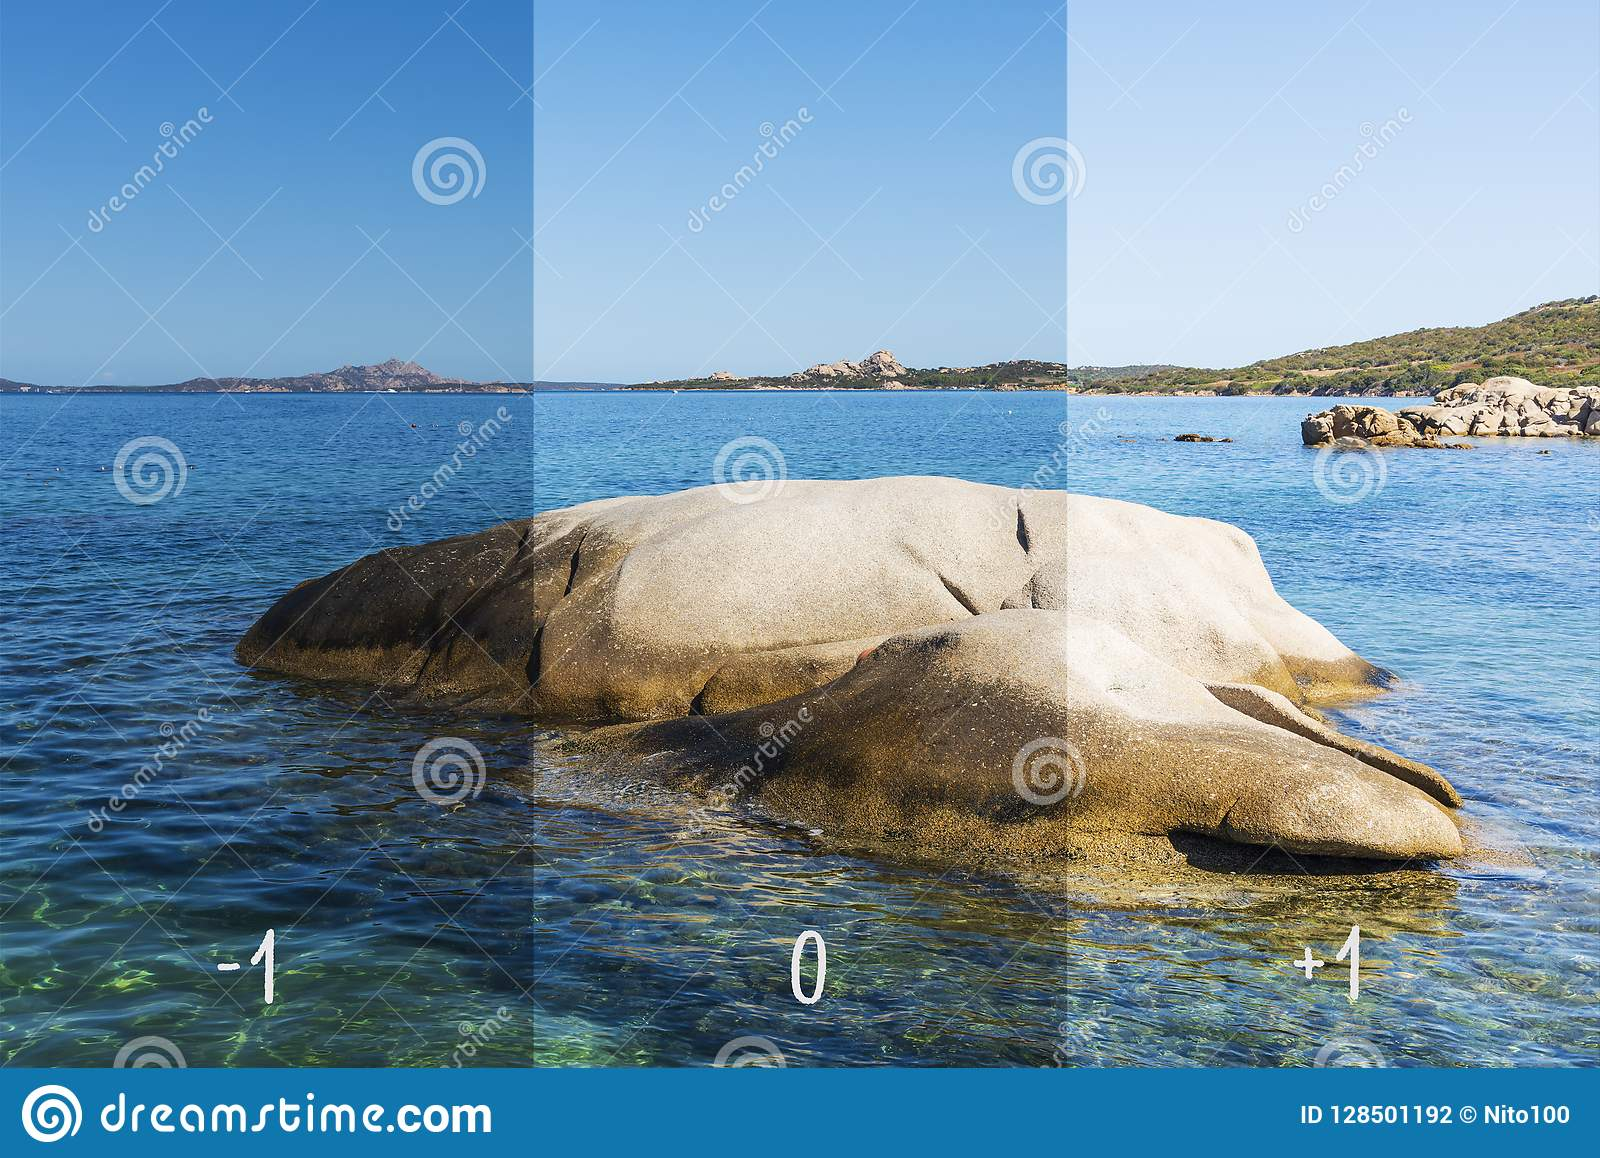 Different Exposures Photos - Free & Royalty-Free Stock Photos from  Dreamstime